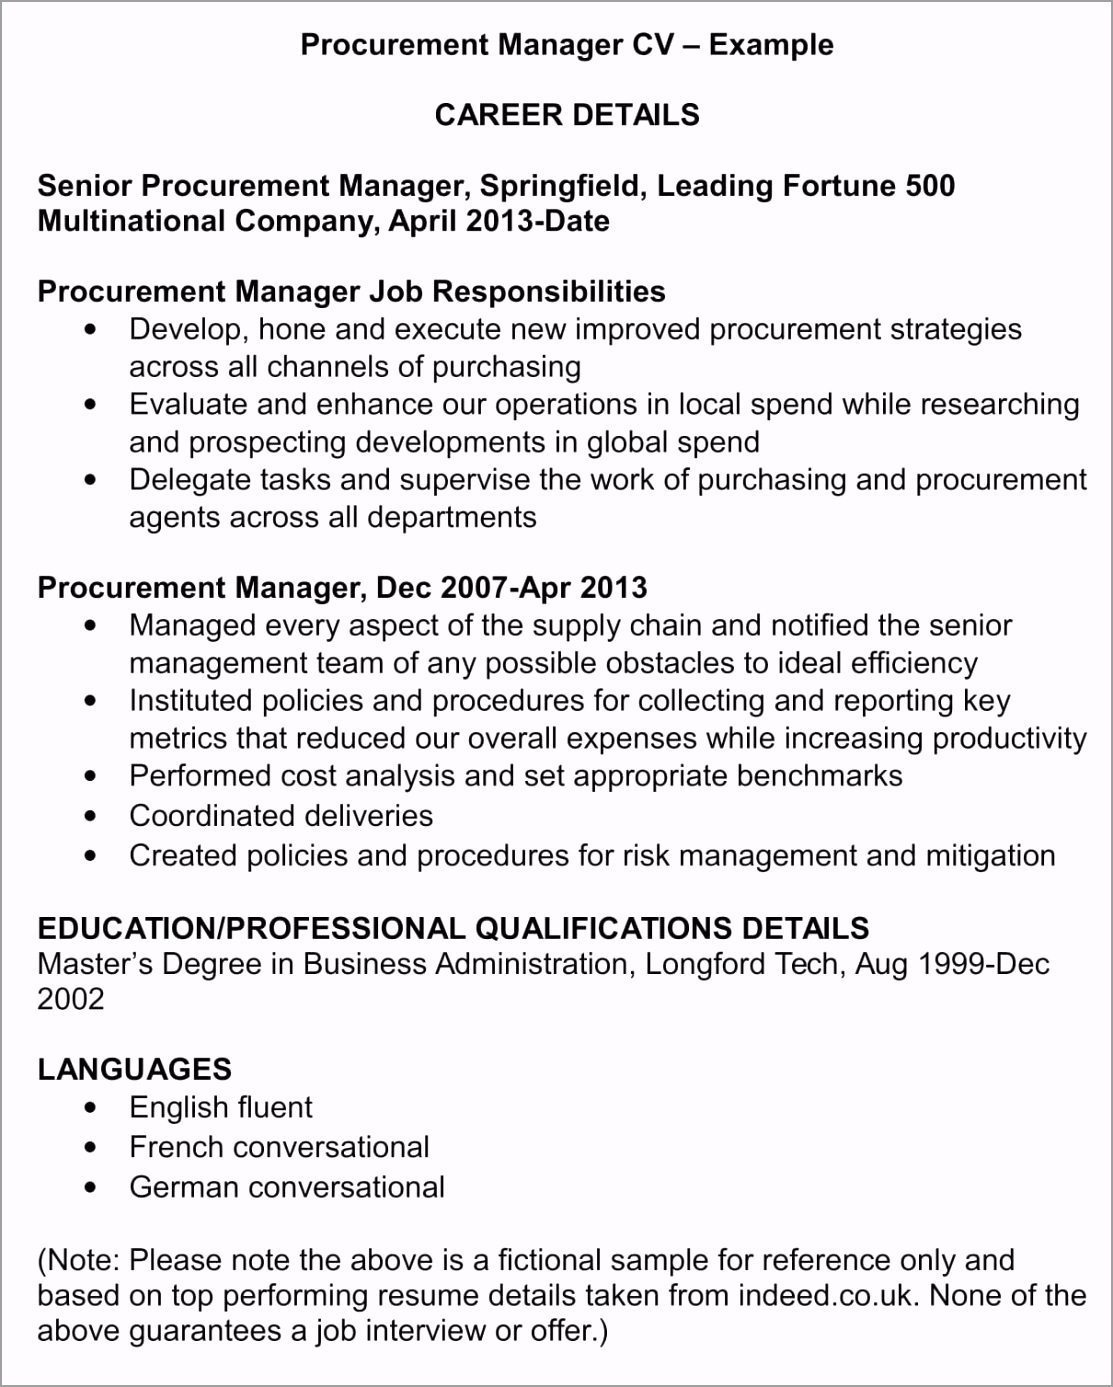 Procurement Manager CV Template Example 1 1 e wooyo